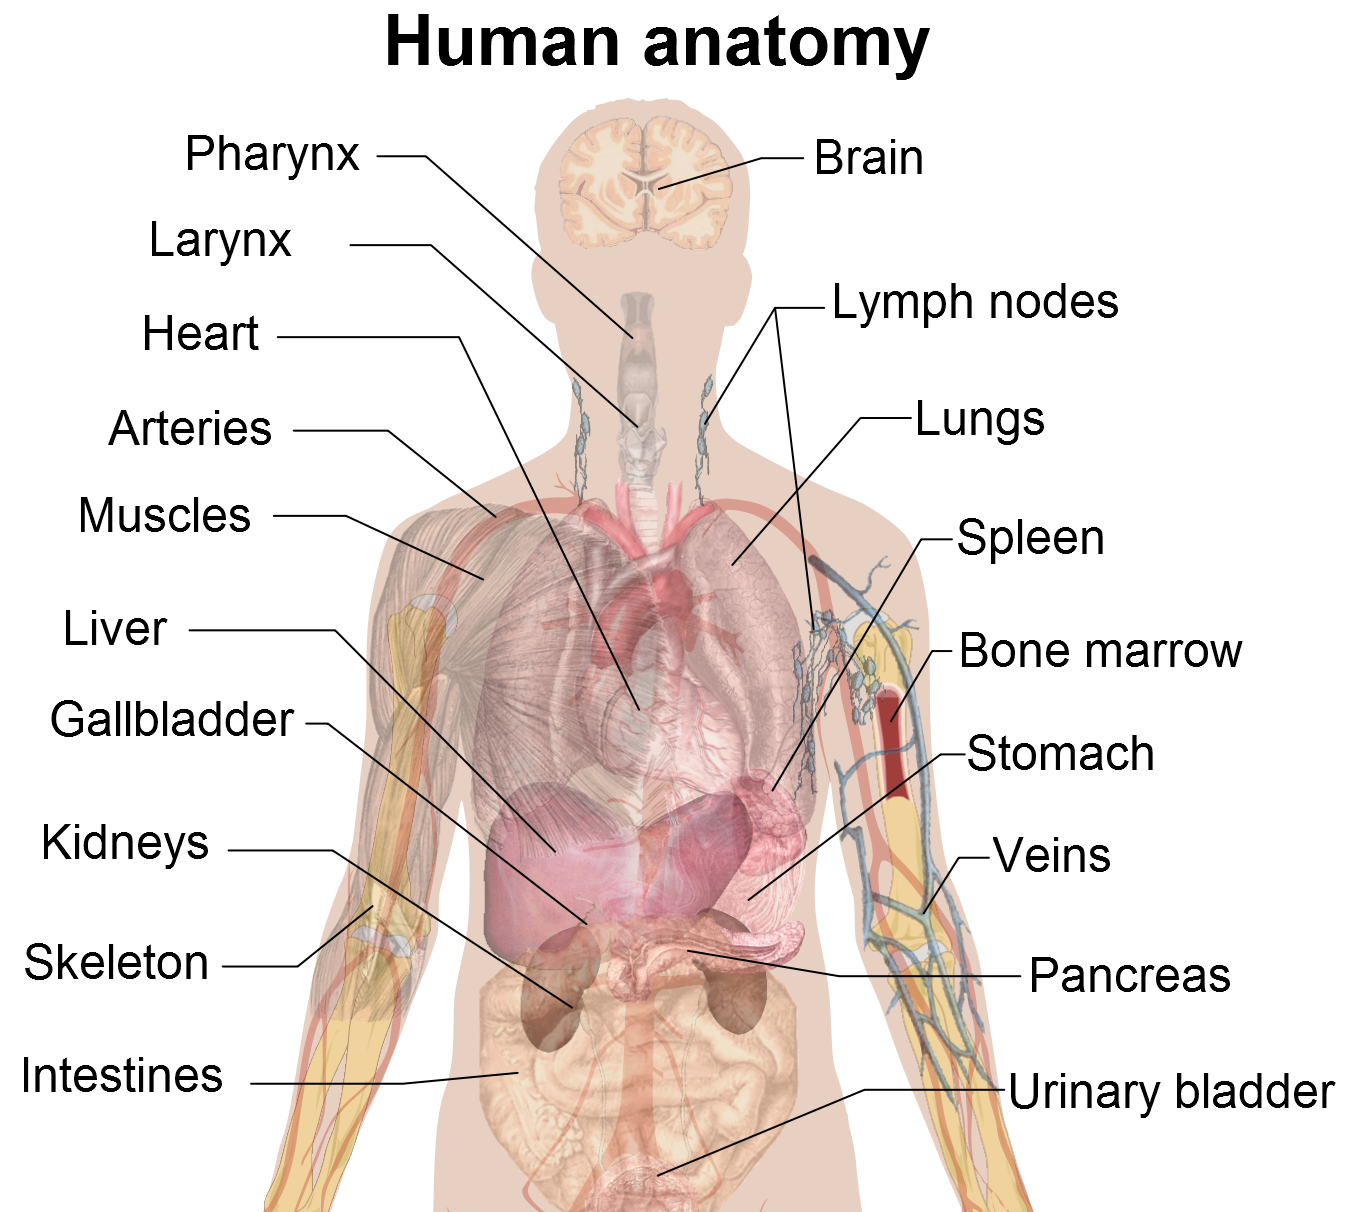 know-your-body-parts: Human Anatomy - Photo and names